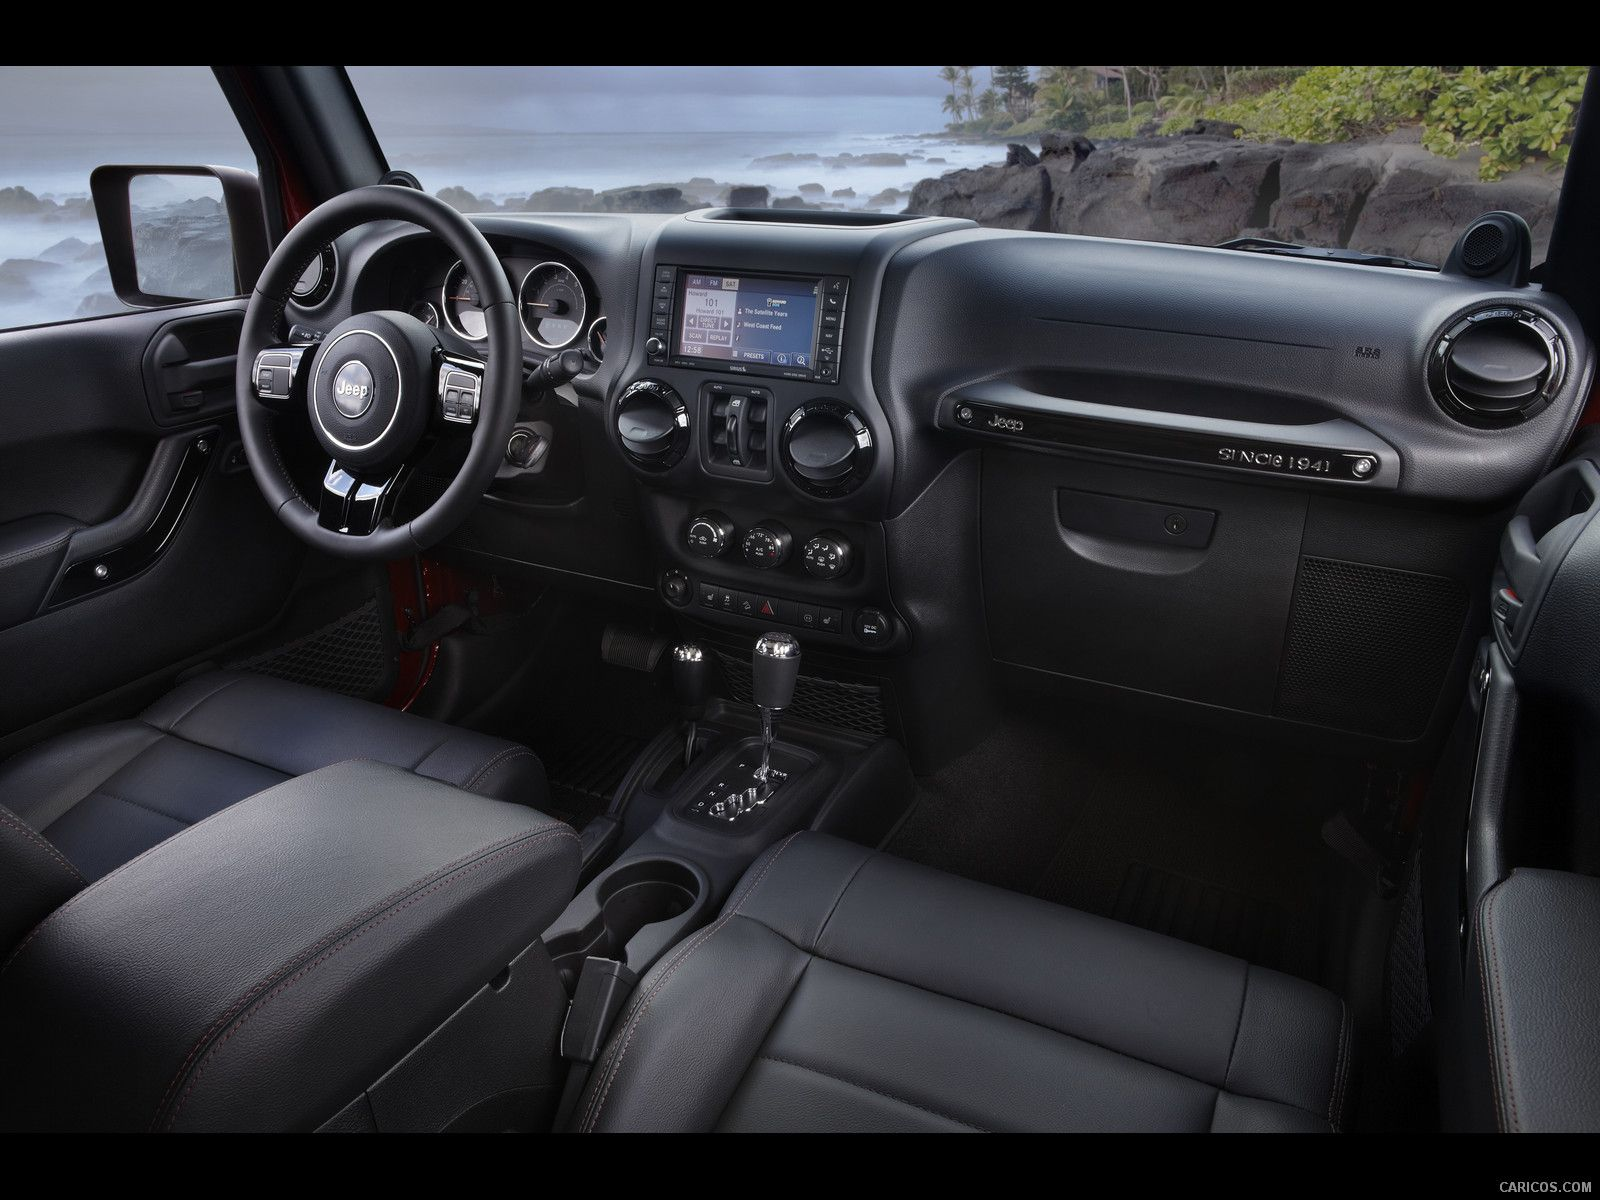 Inside of ryan 39 s jeep rubicon fading book inspiration pinterest jeep jeep wrangler and for Jeep wrangler rubicon interior